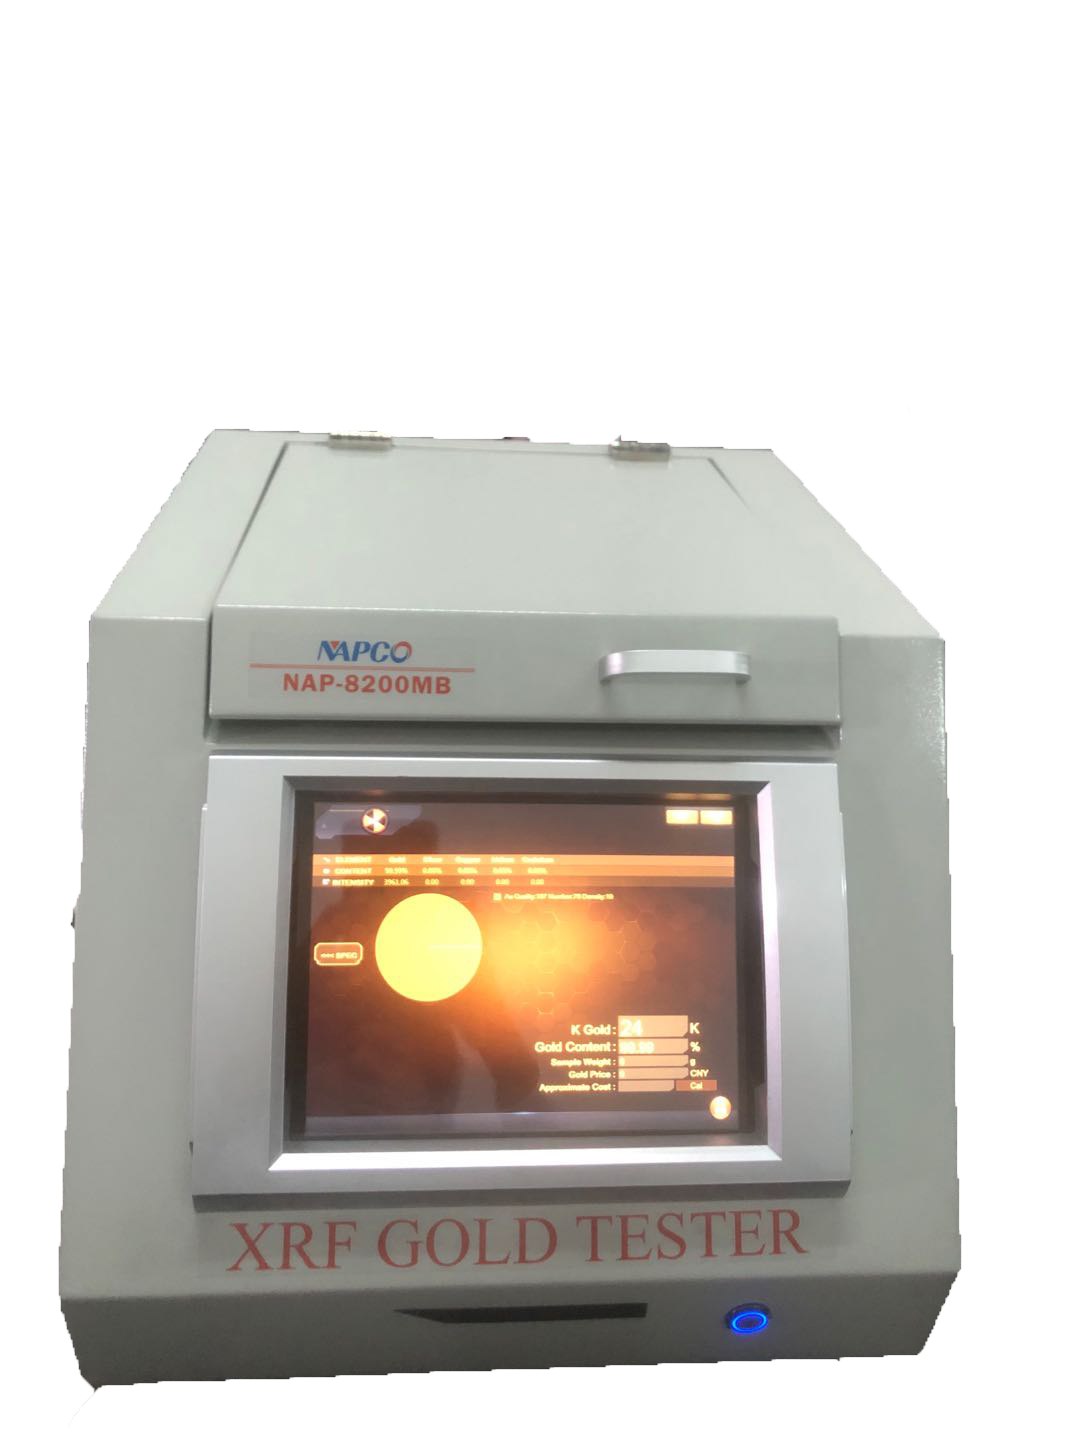 NAP 8200MB china high efficiency xrf gold tester